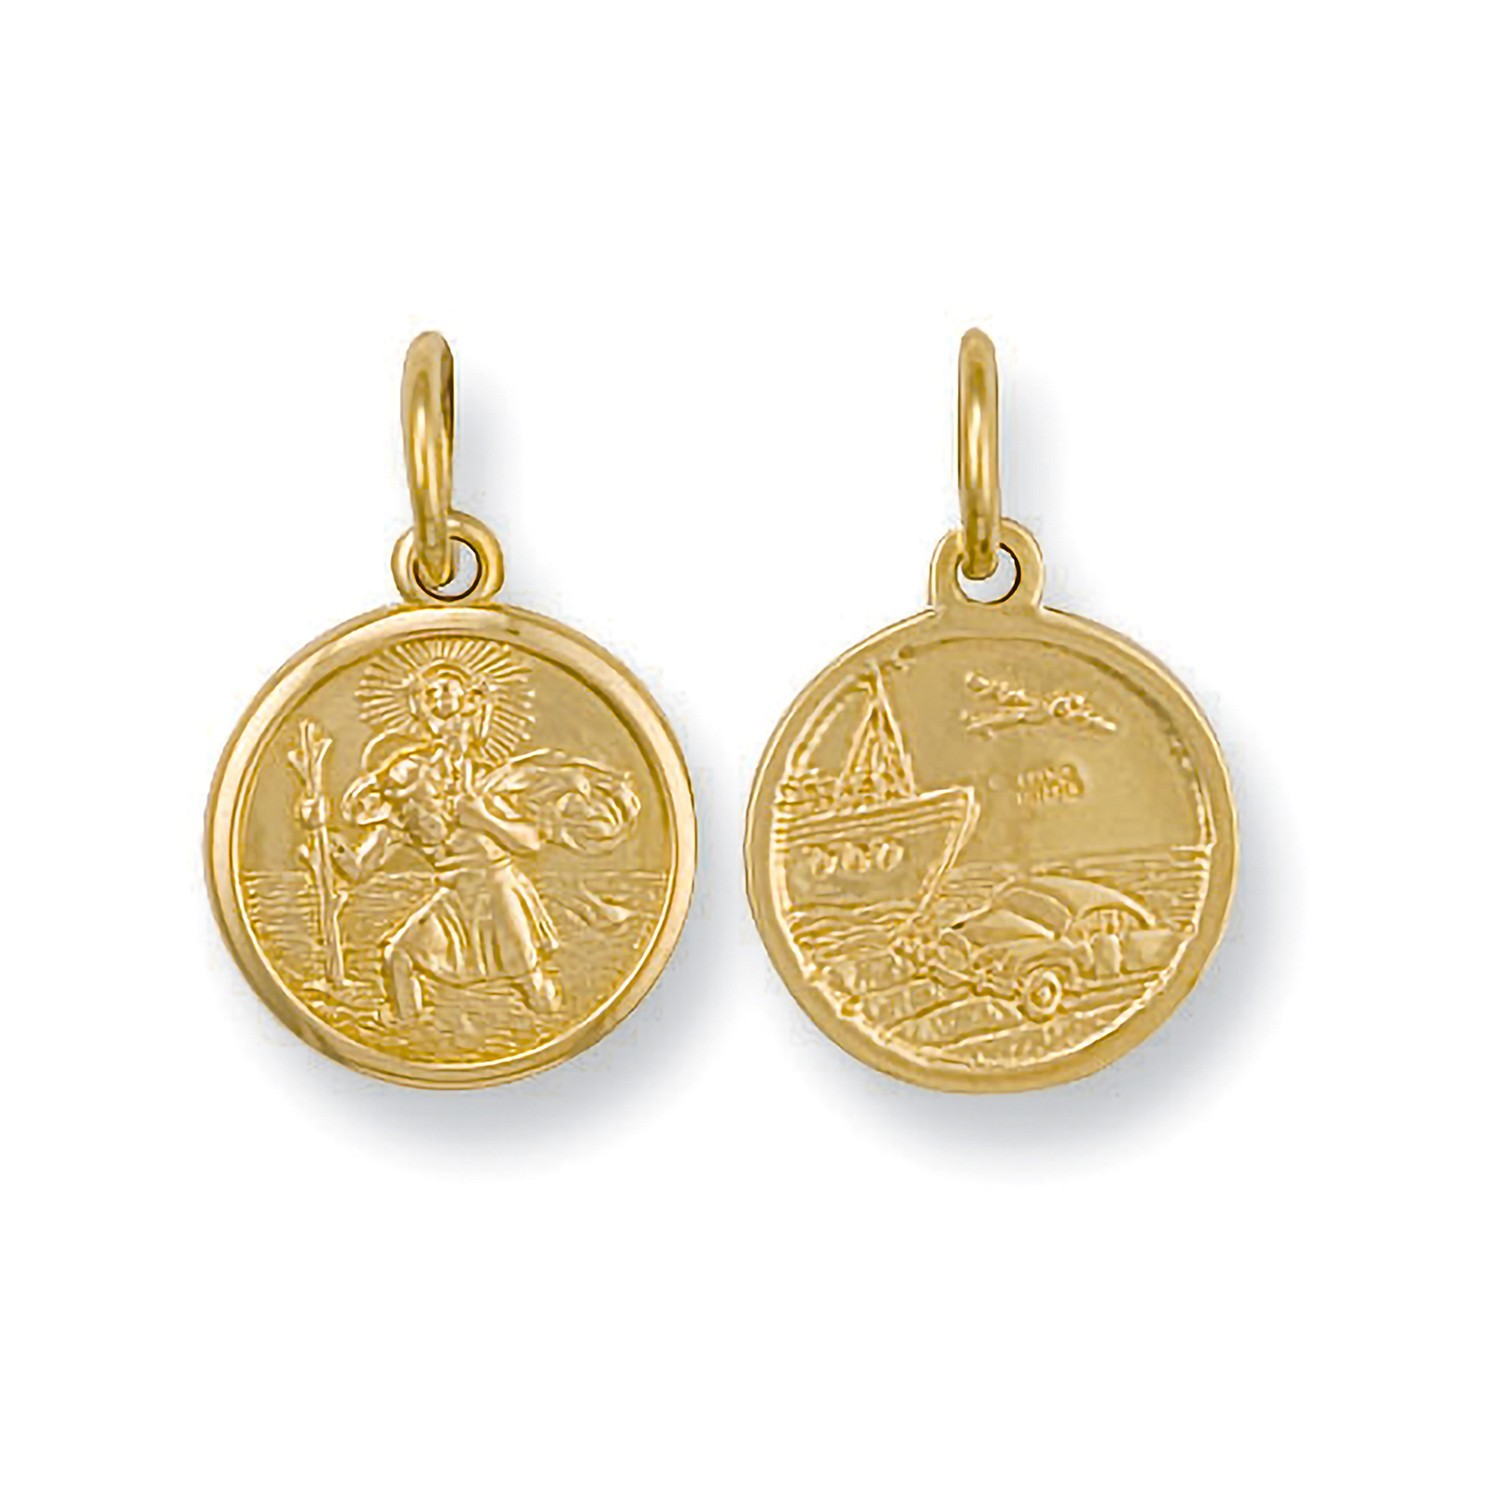 Y/G Double Sided St Christopher Pendant